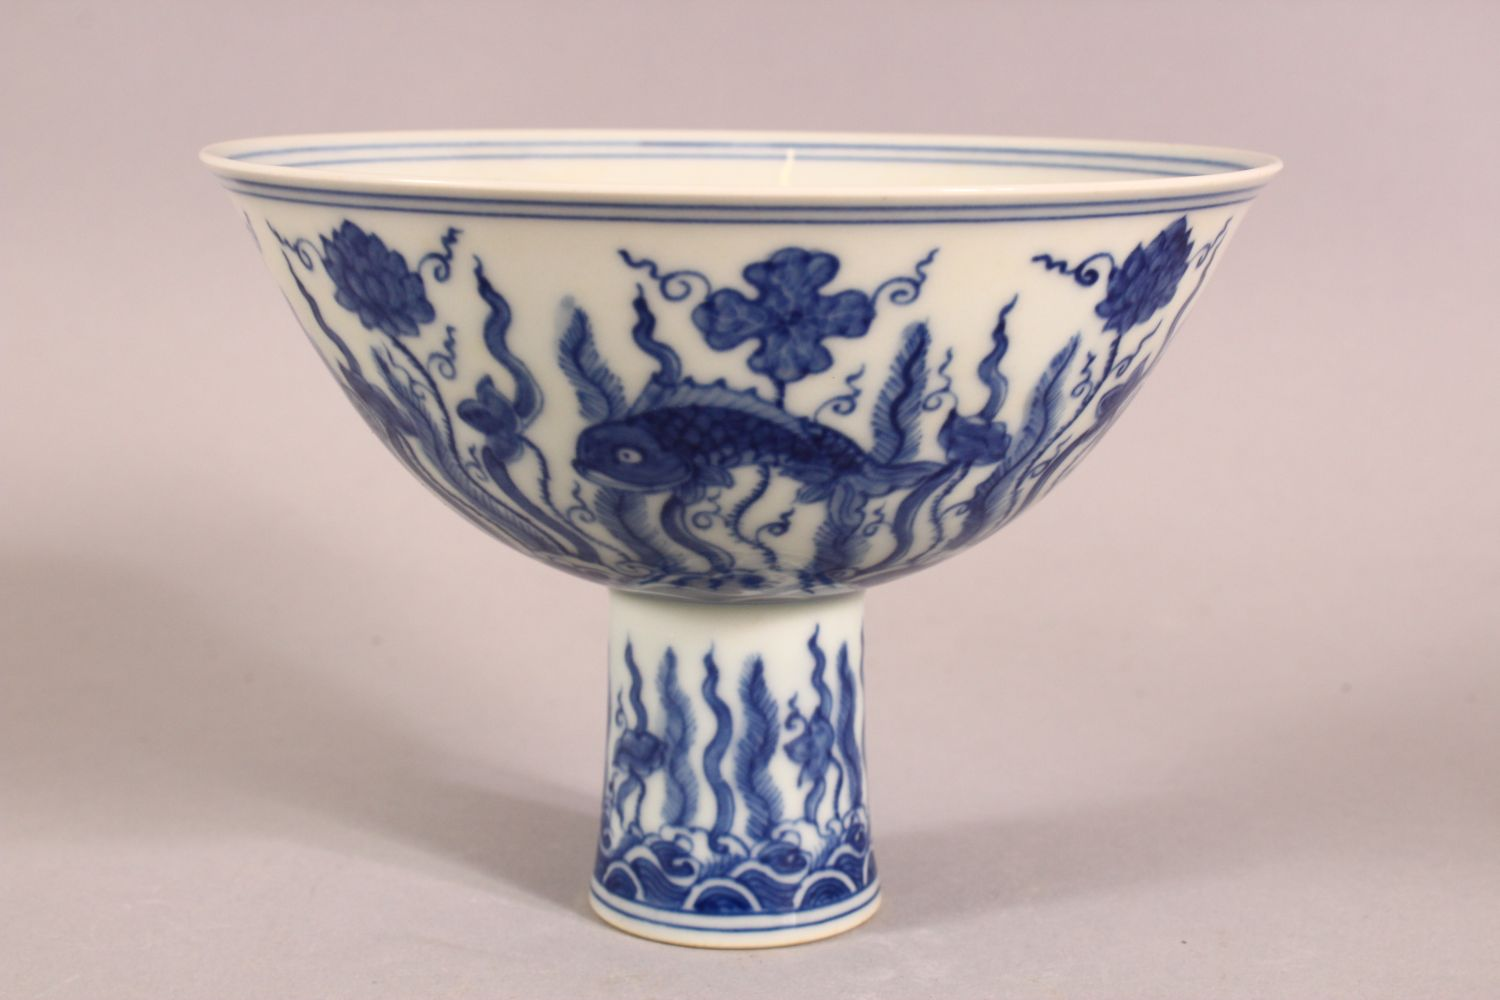 A CHINESE BLUE AND WHITE PORCELAIN STEM CUP, the bowl painted with fish amongst aquatic flora - Image 3 of 6